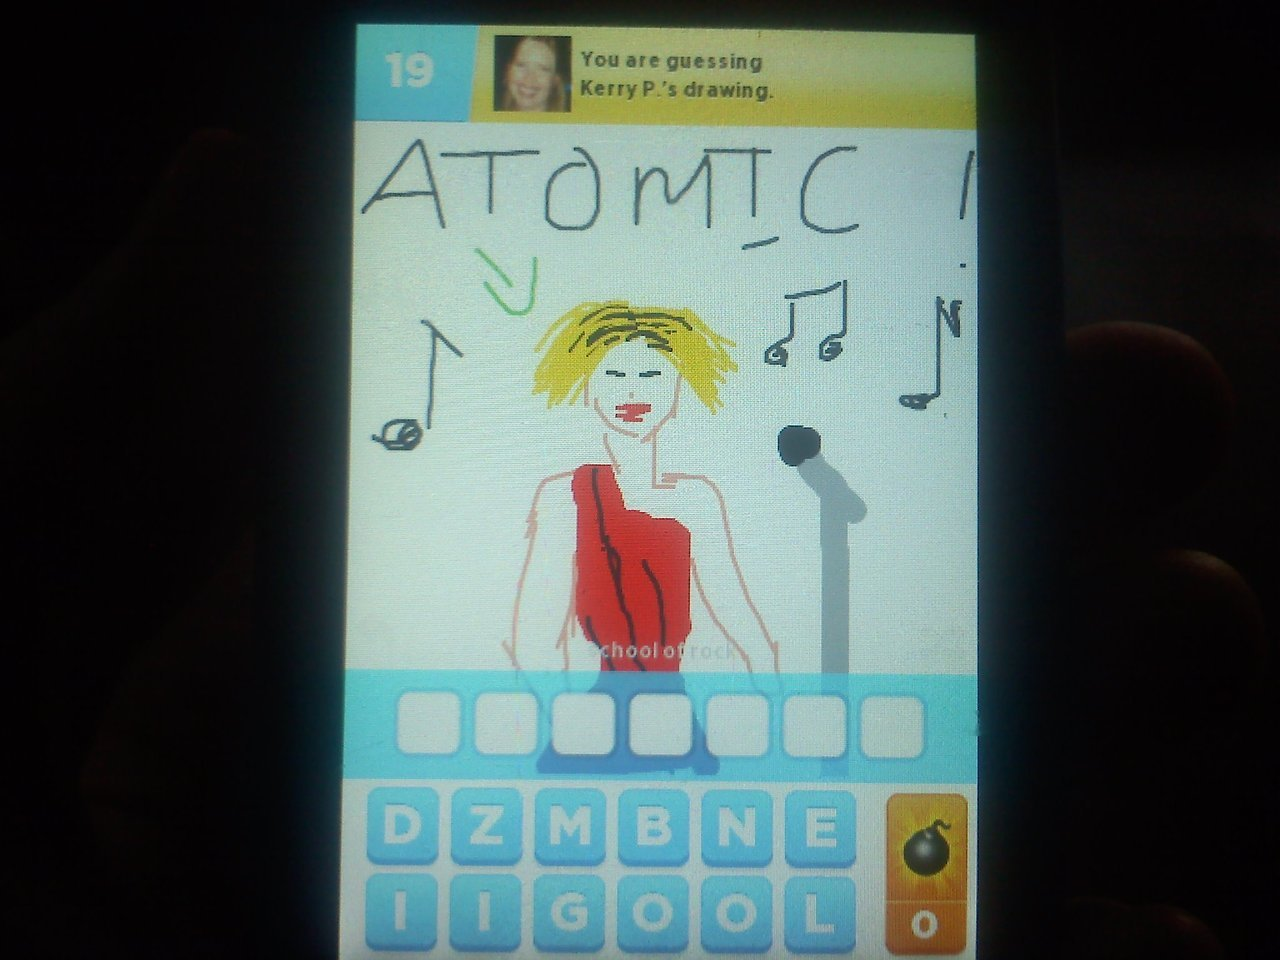 Stuck on Draw Something. Can you help me?